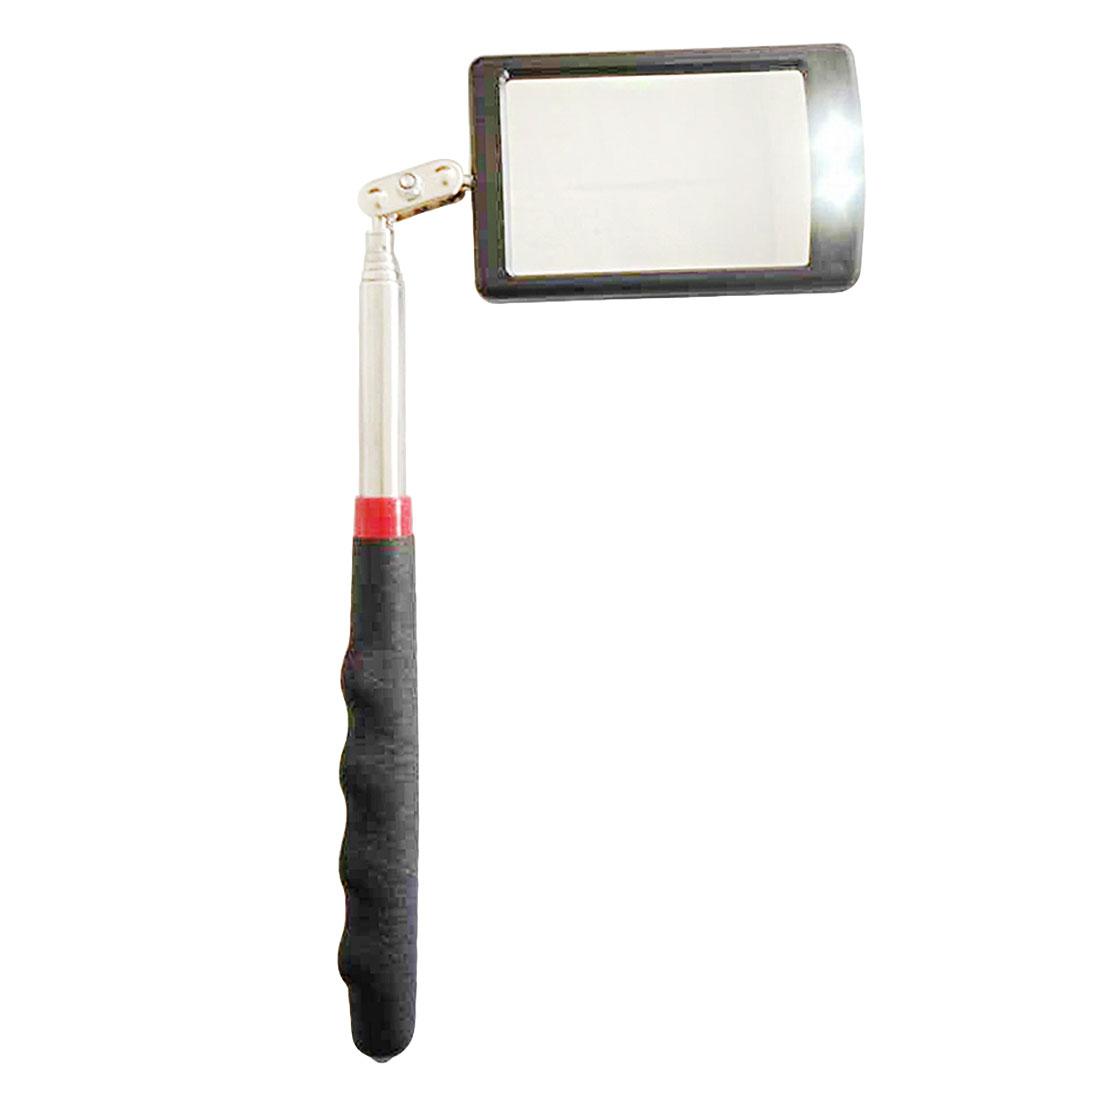 Hot Automotive Telescopic Detection Lens Telescoping Inspection Mirror Extending Car Angle View Pen Flexible Adjustable